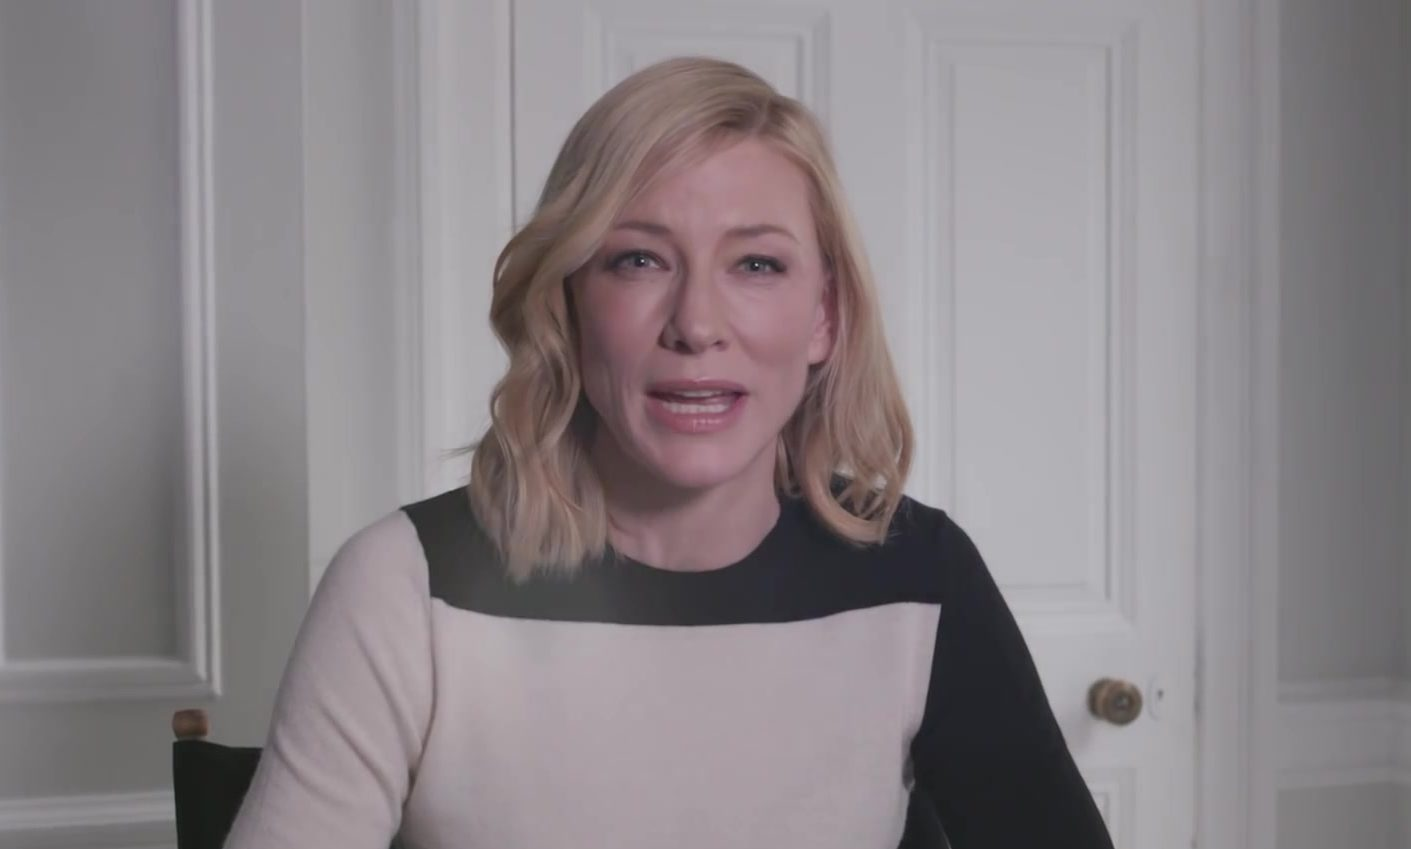 New video message from UNHCR goodwill ambassador Cate Blanchett